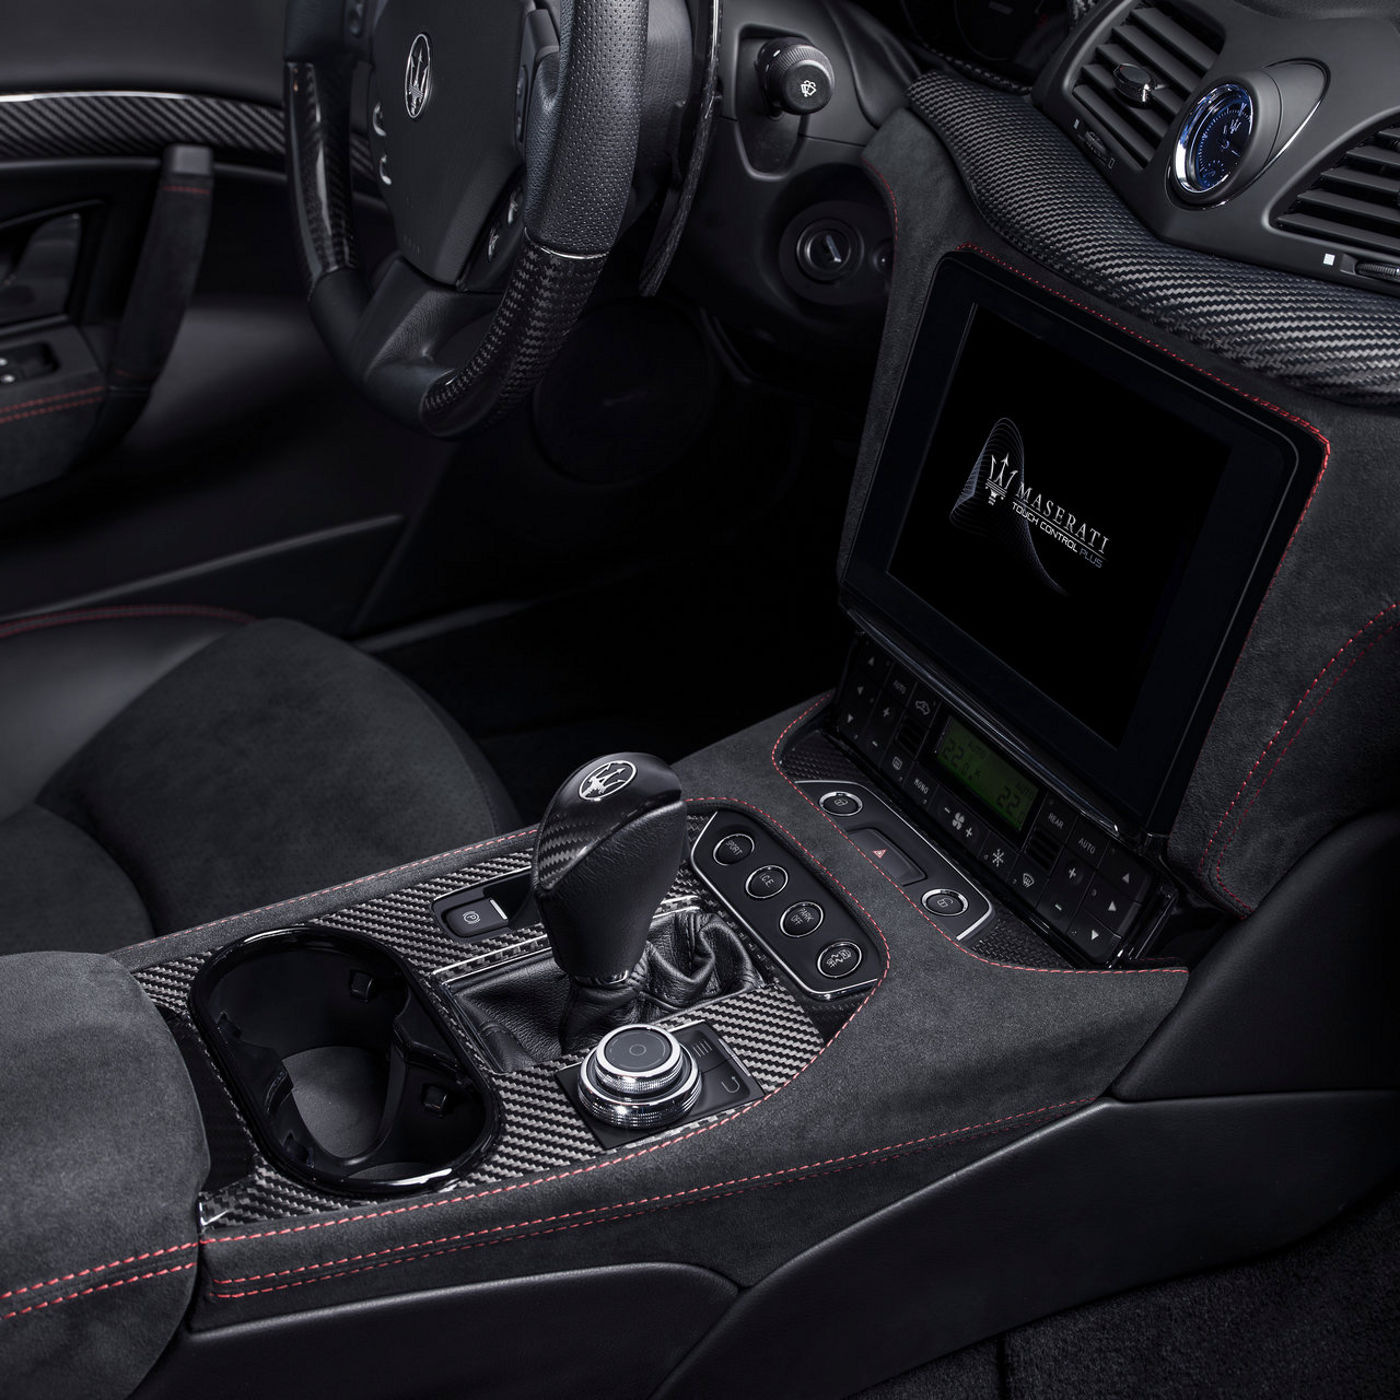 Maserati luxury interiors - A detail with black leather